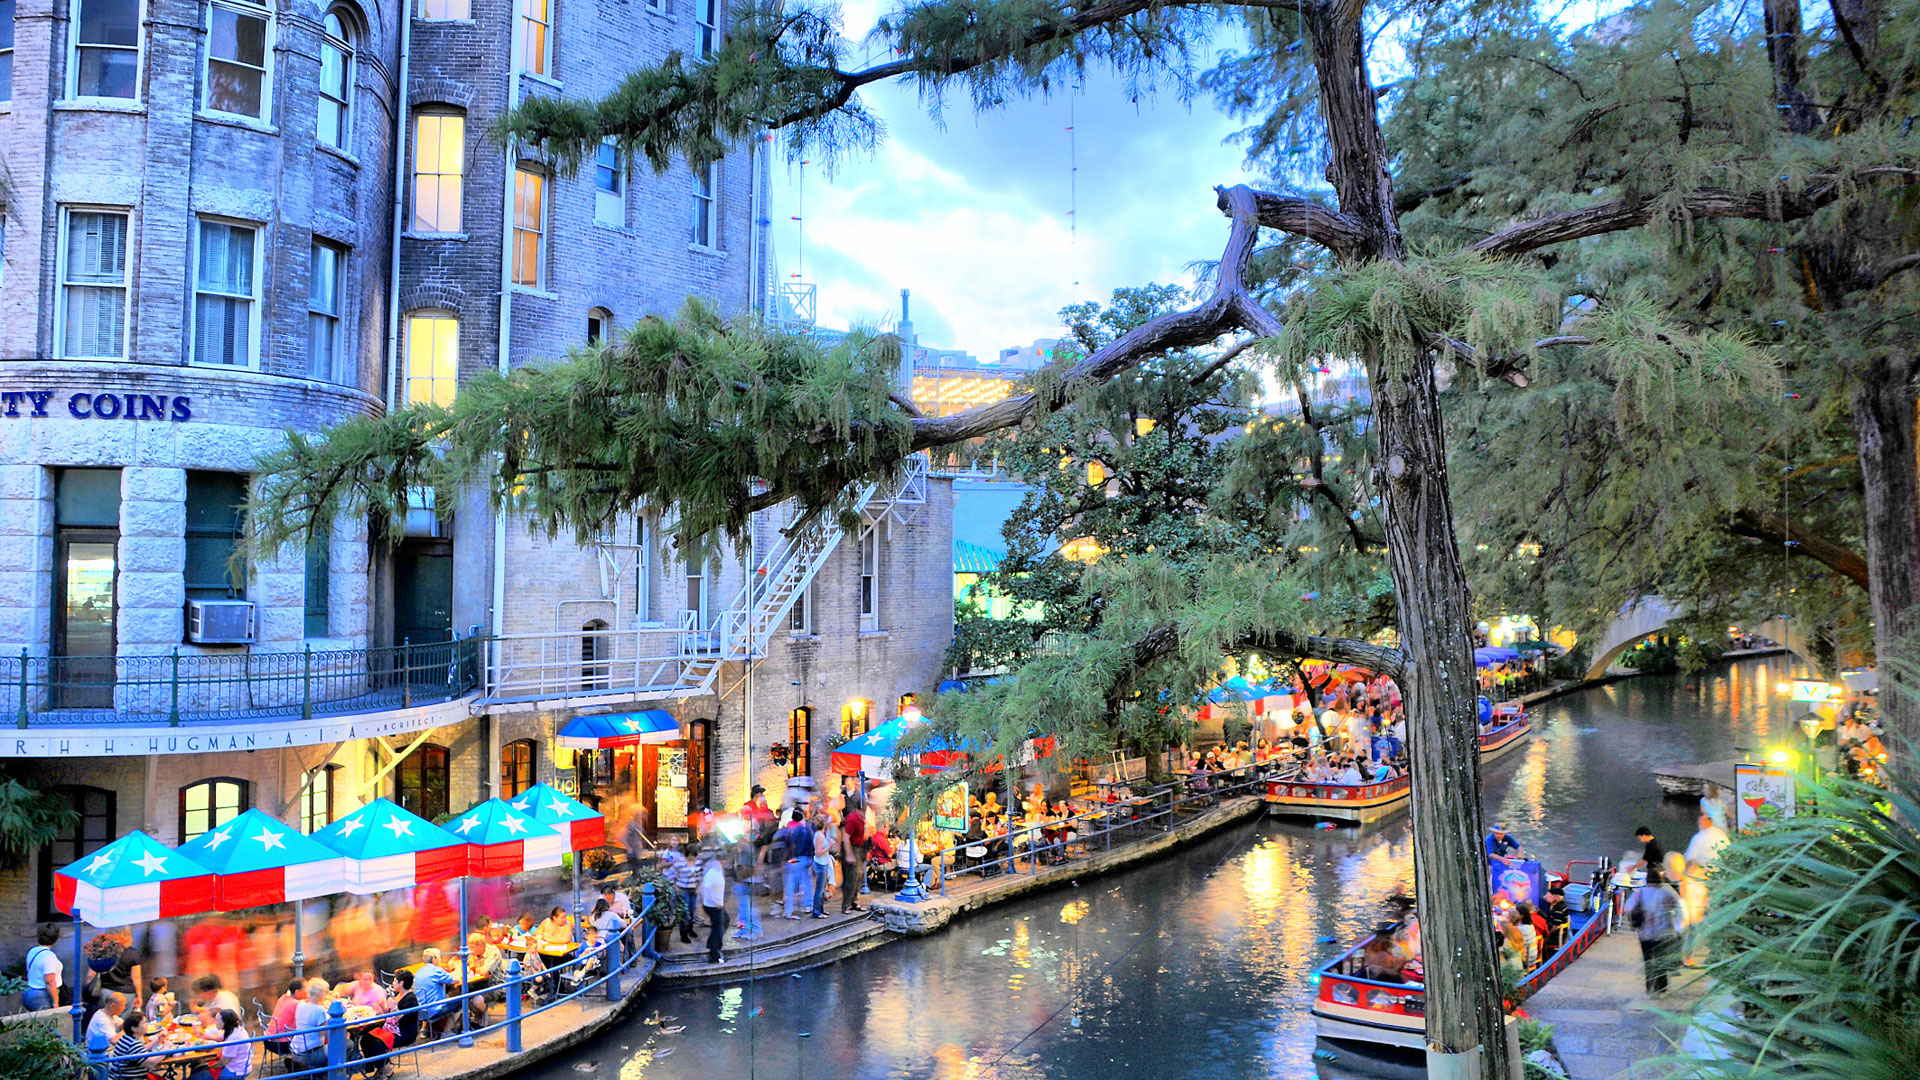 The Riverwalk in San Antonio, Texas